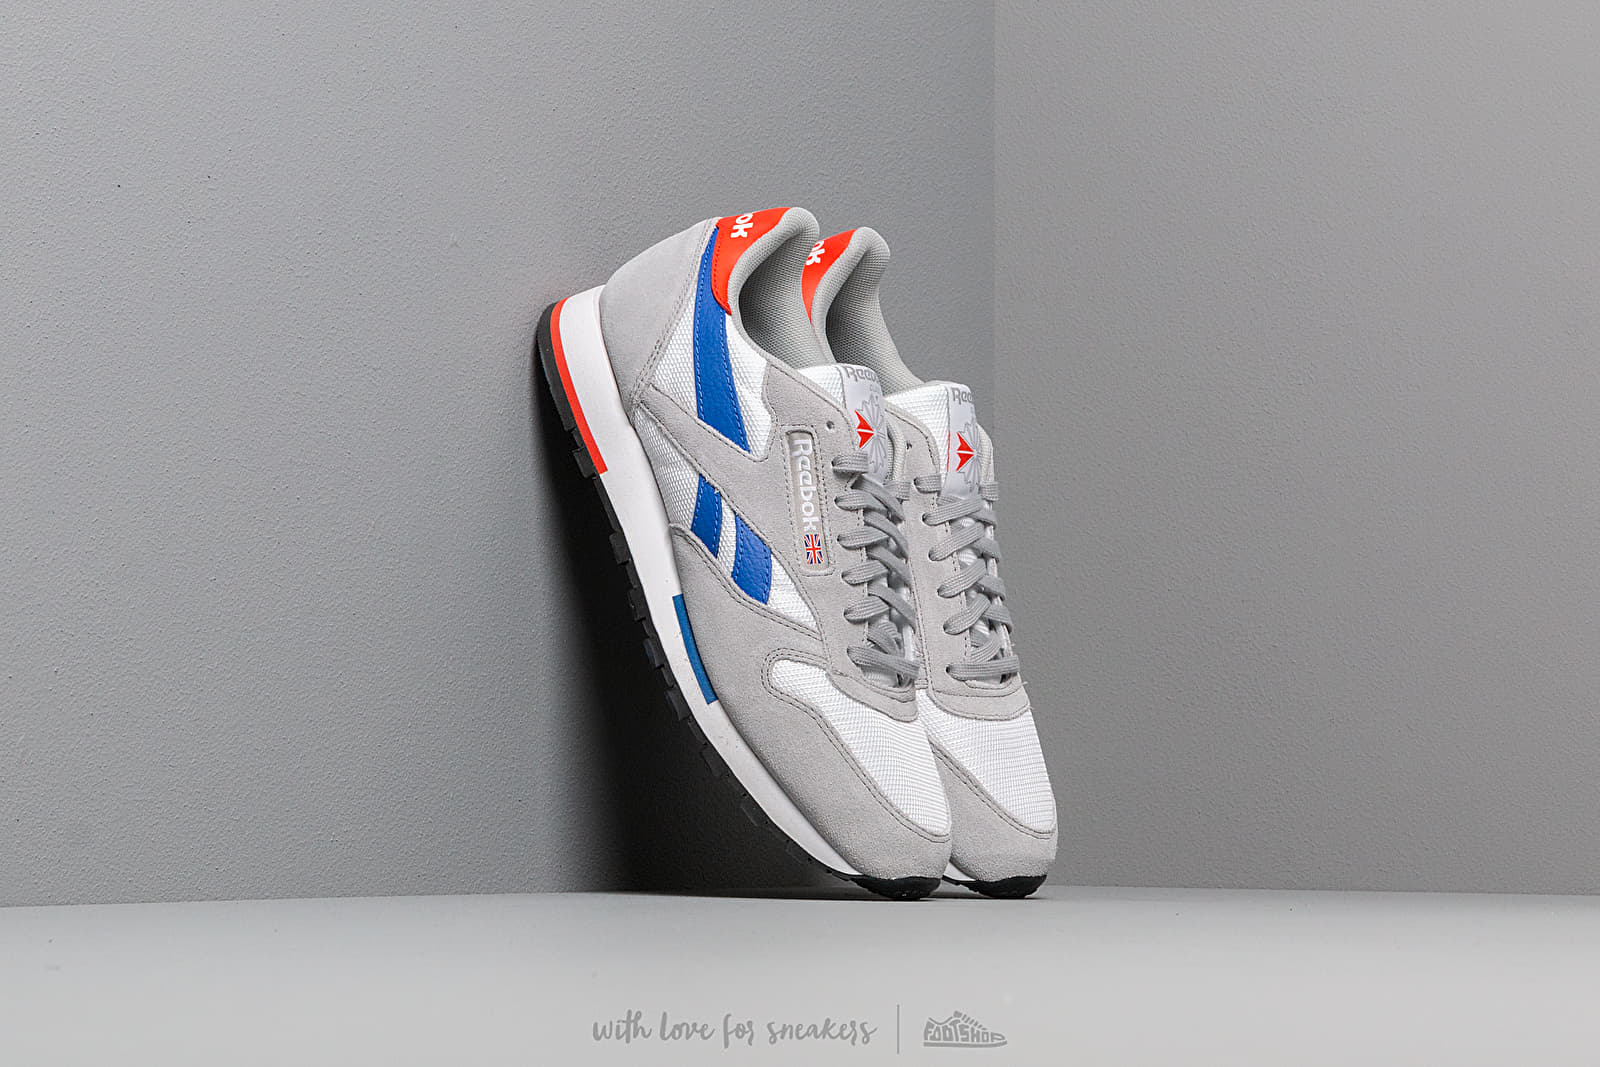 fced6ed76 Reebok Classic Leather MU White  Grey  Cobalt  Orange  Black a muy buen